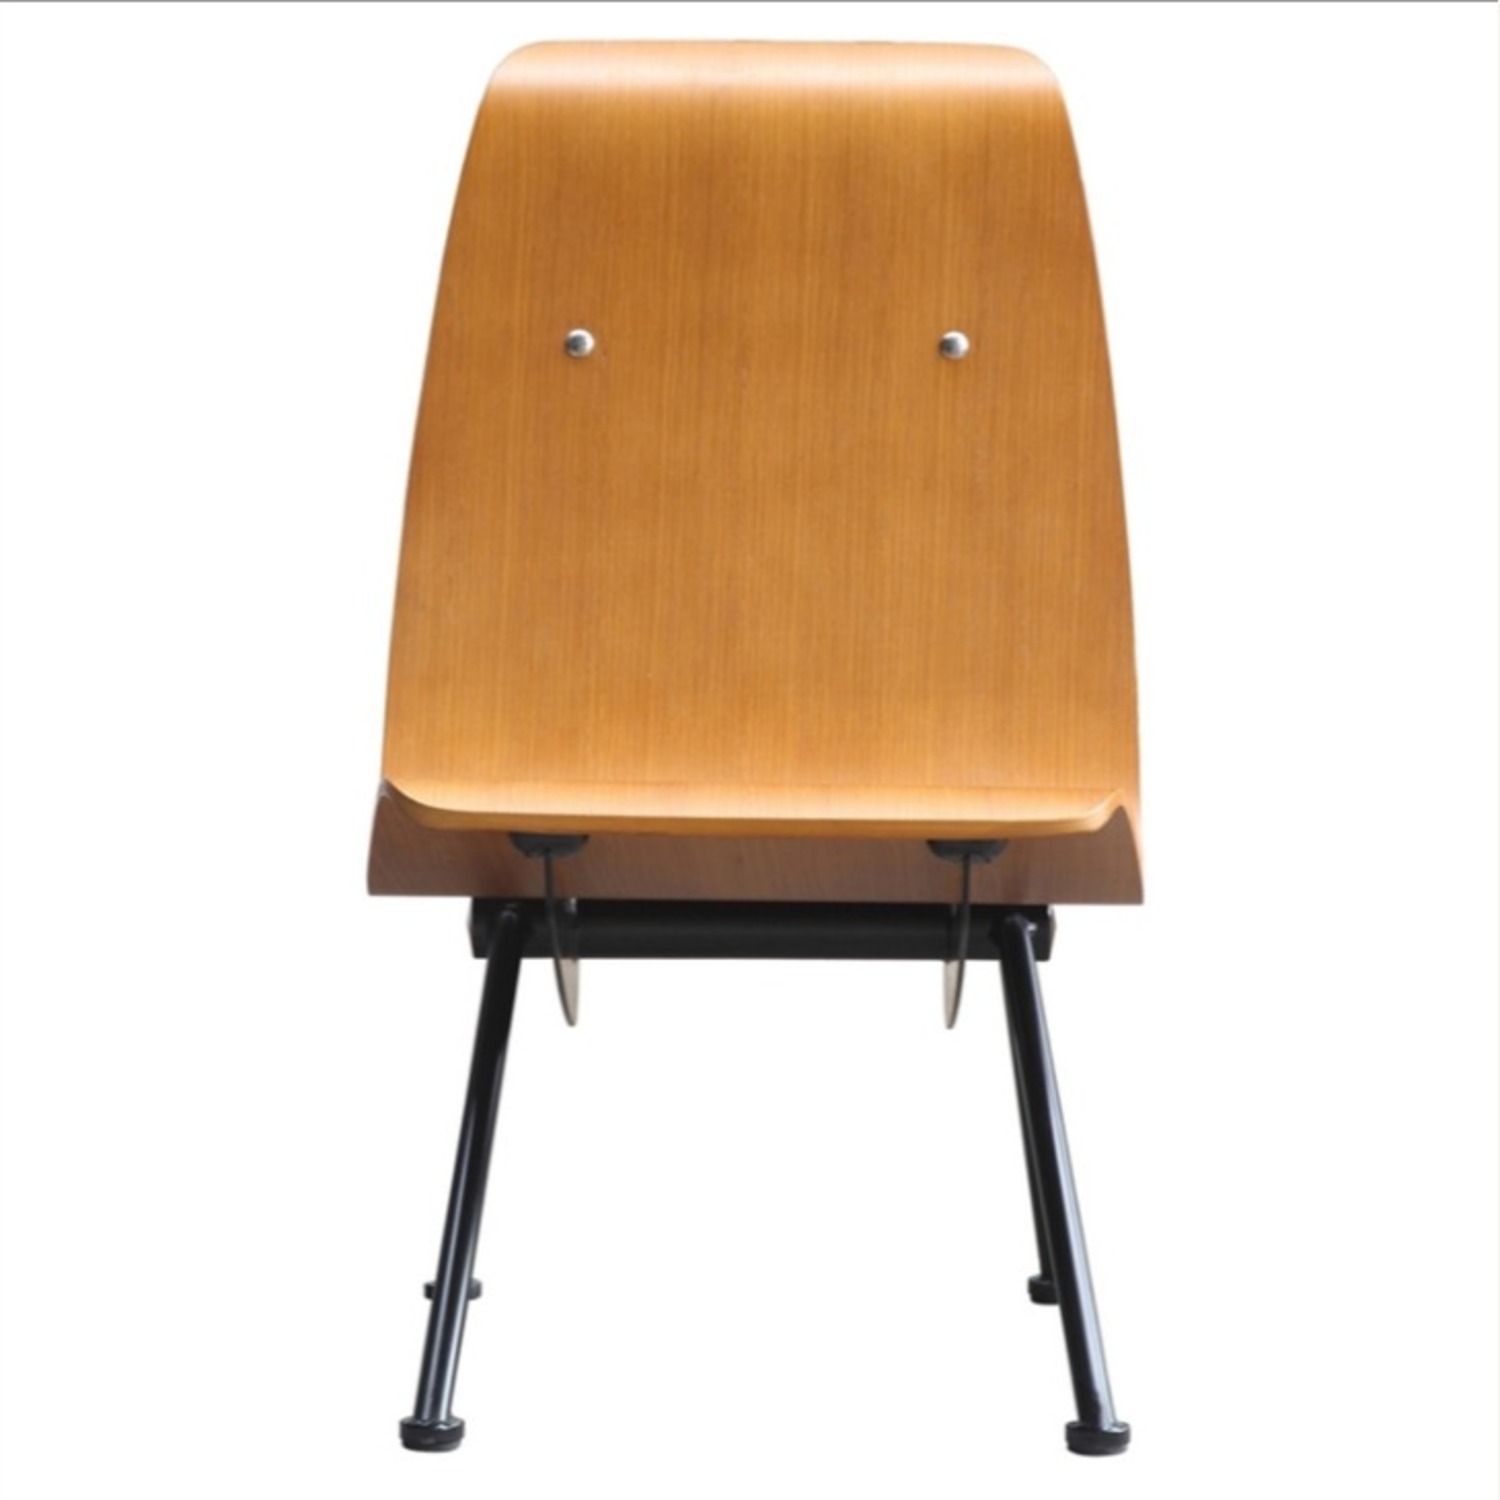 Contemporary Side Chair Crafted In Walnut Plywood - image-1